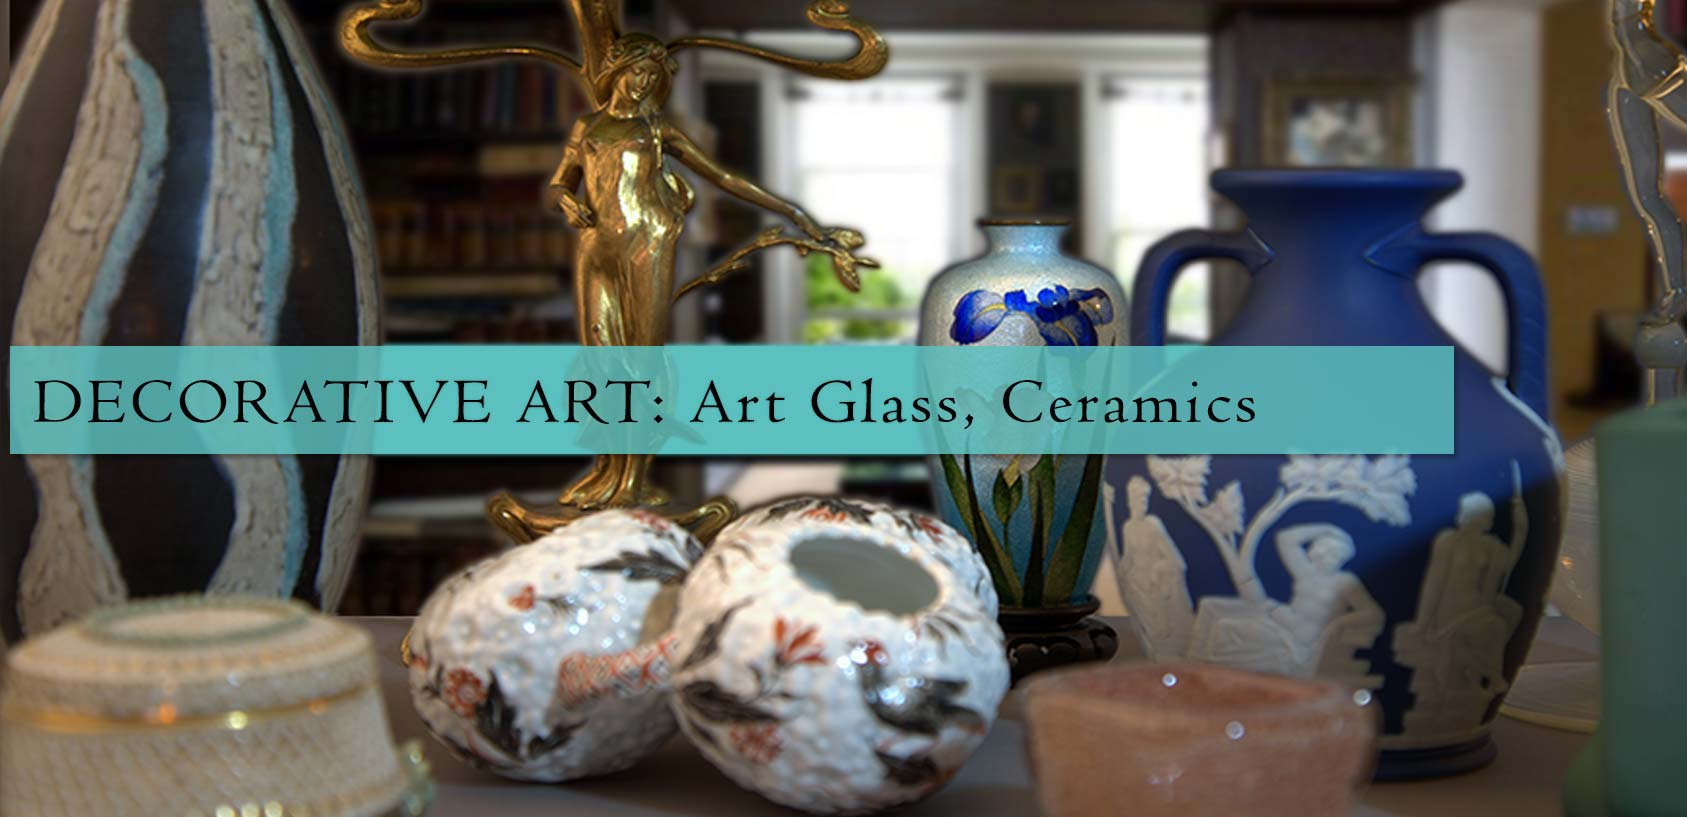 Art Glass Ceramics For Sale Decorative Arts